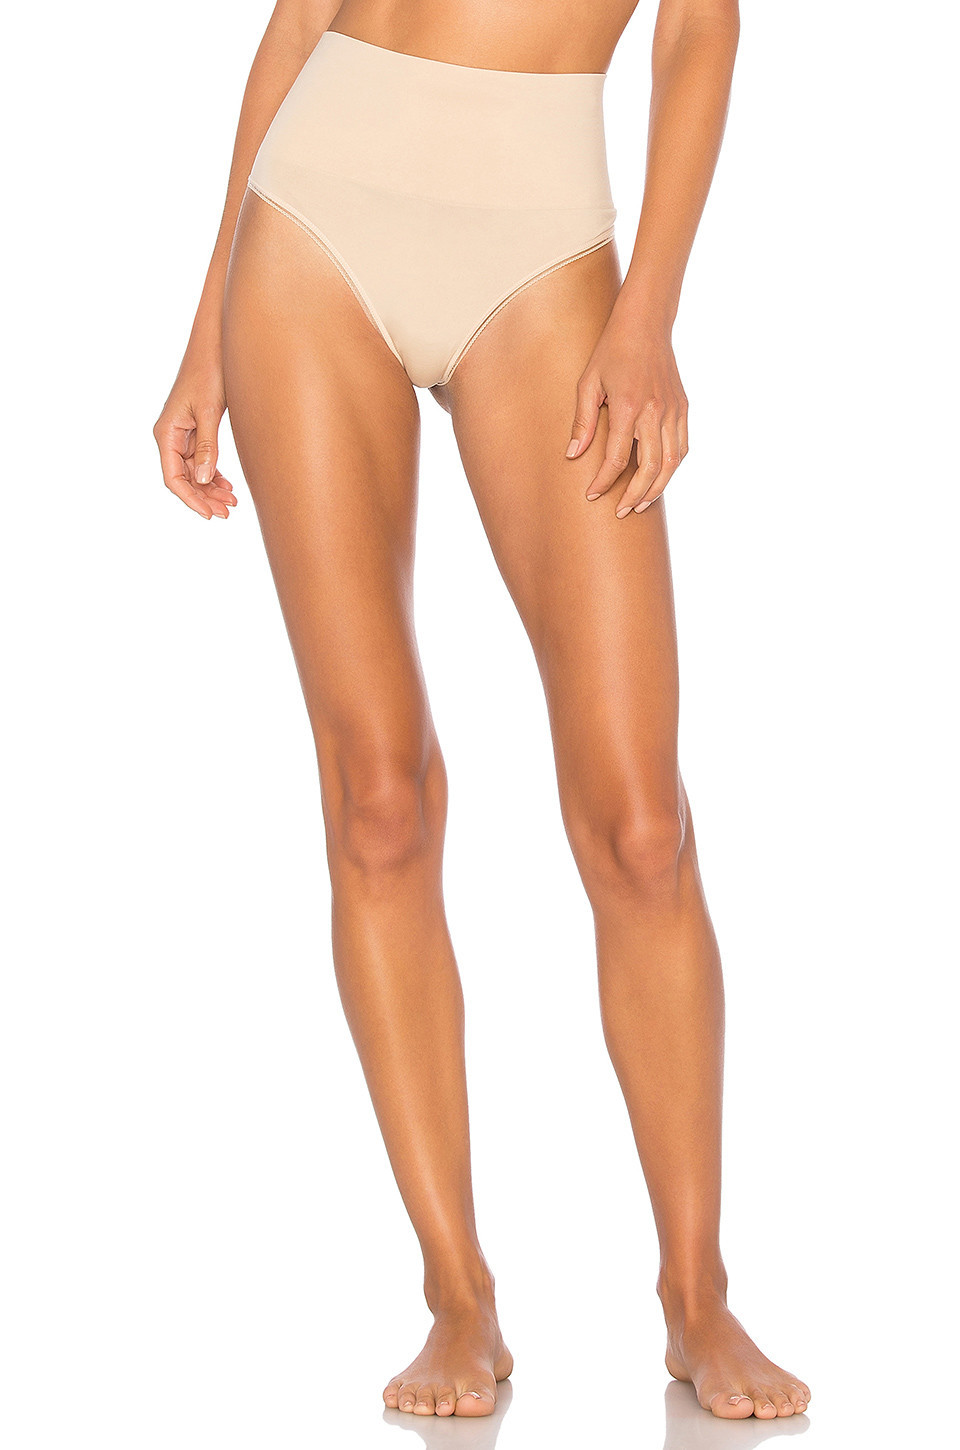 Yummie by Heather Thomson Seamlessly Shaped Ultralight Nylon Thong in beige / beige